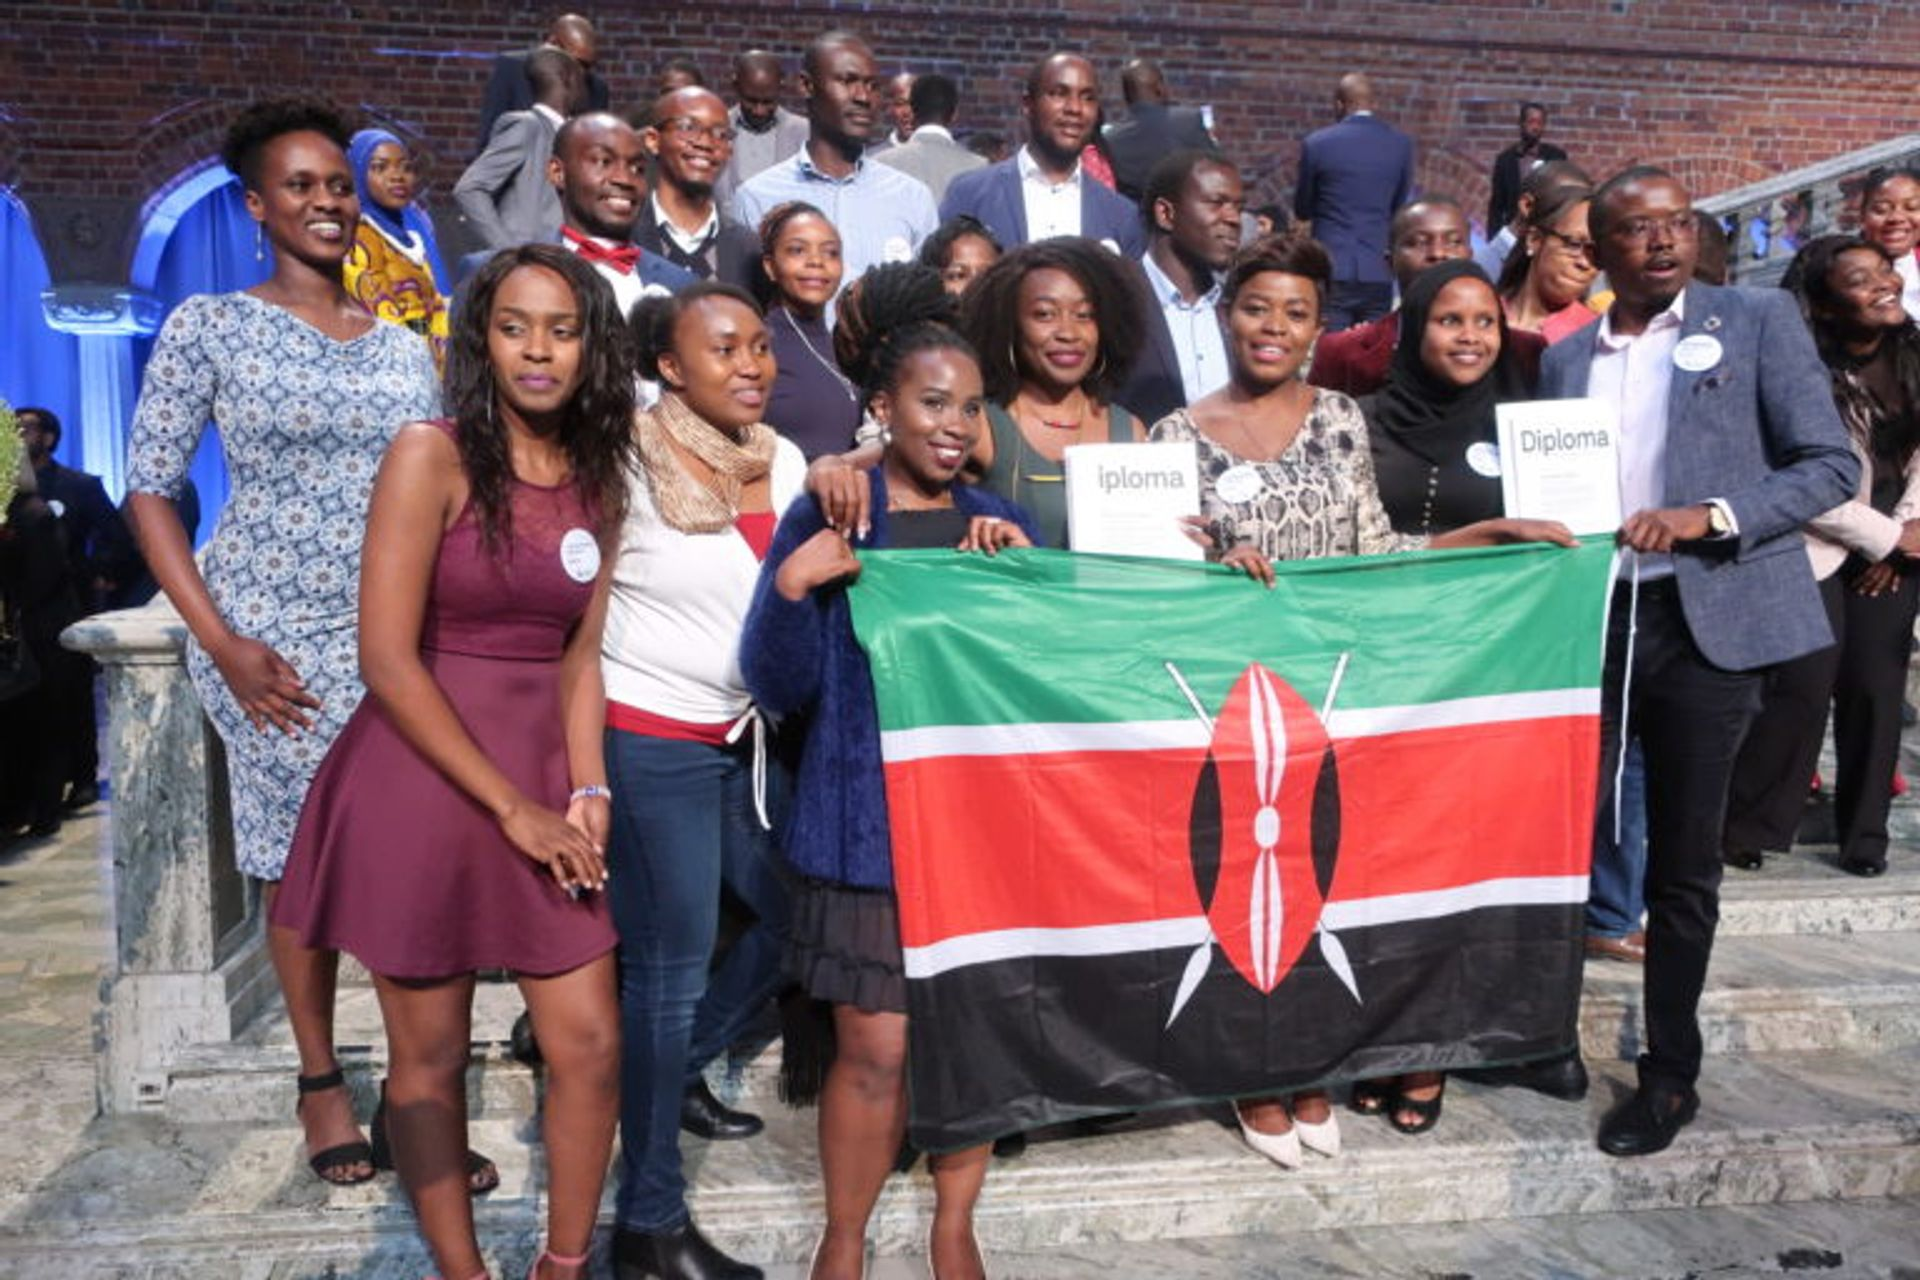 A group of students holding up a Kenyan flag.